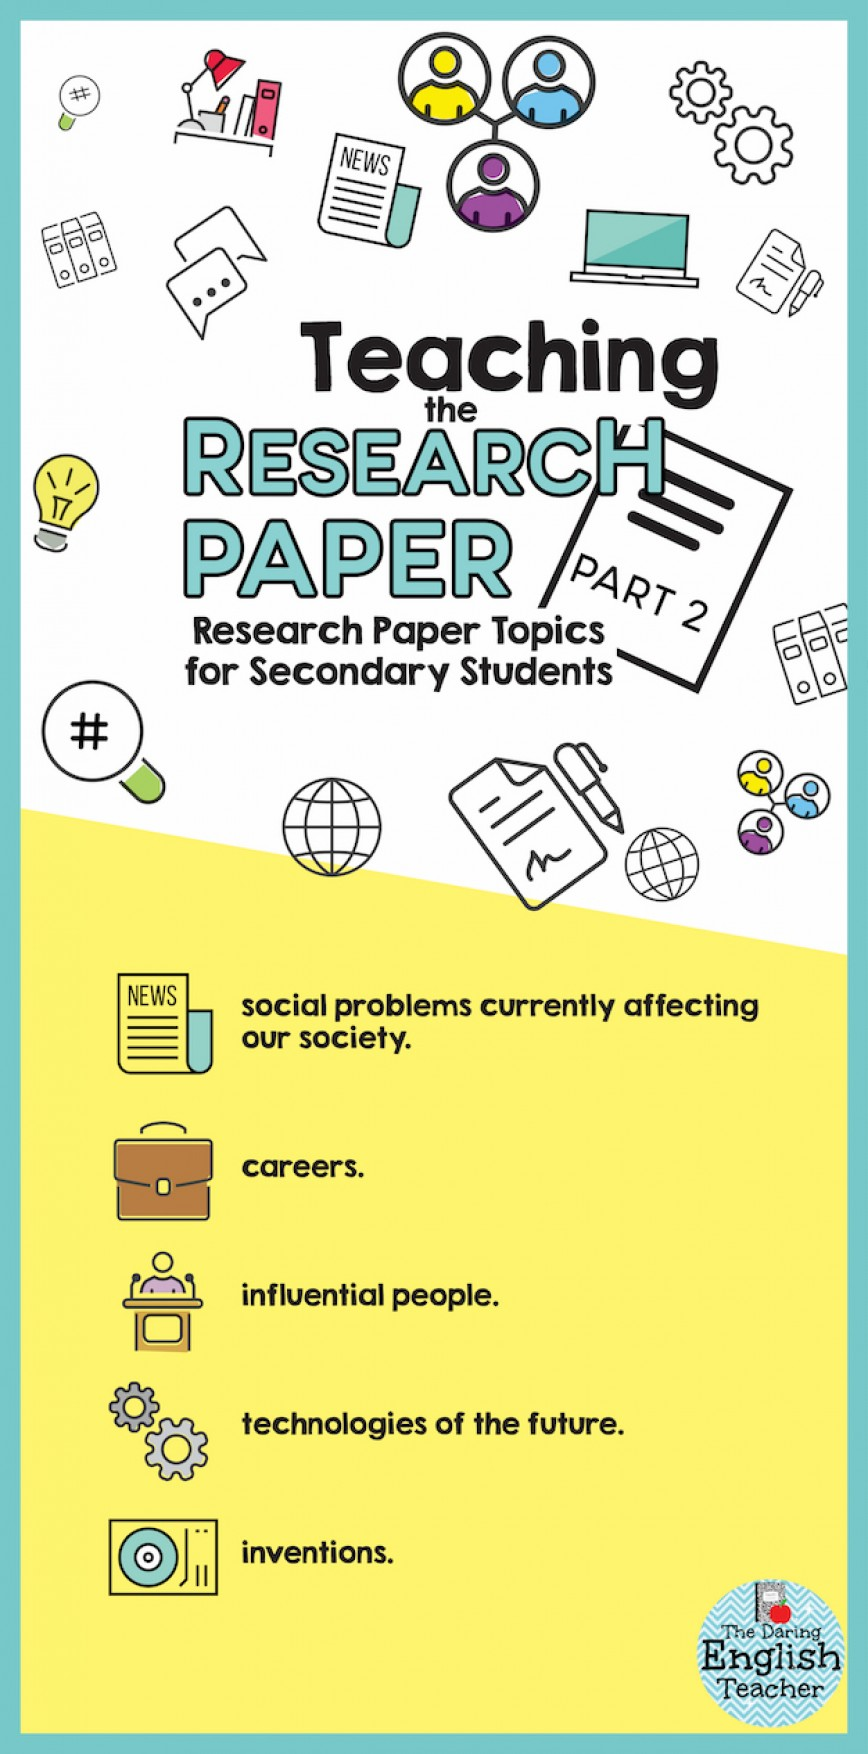 020 Infographic2bp22b2 Research Paper Topic For Unusual A Chemistry Topics High School Special Education